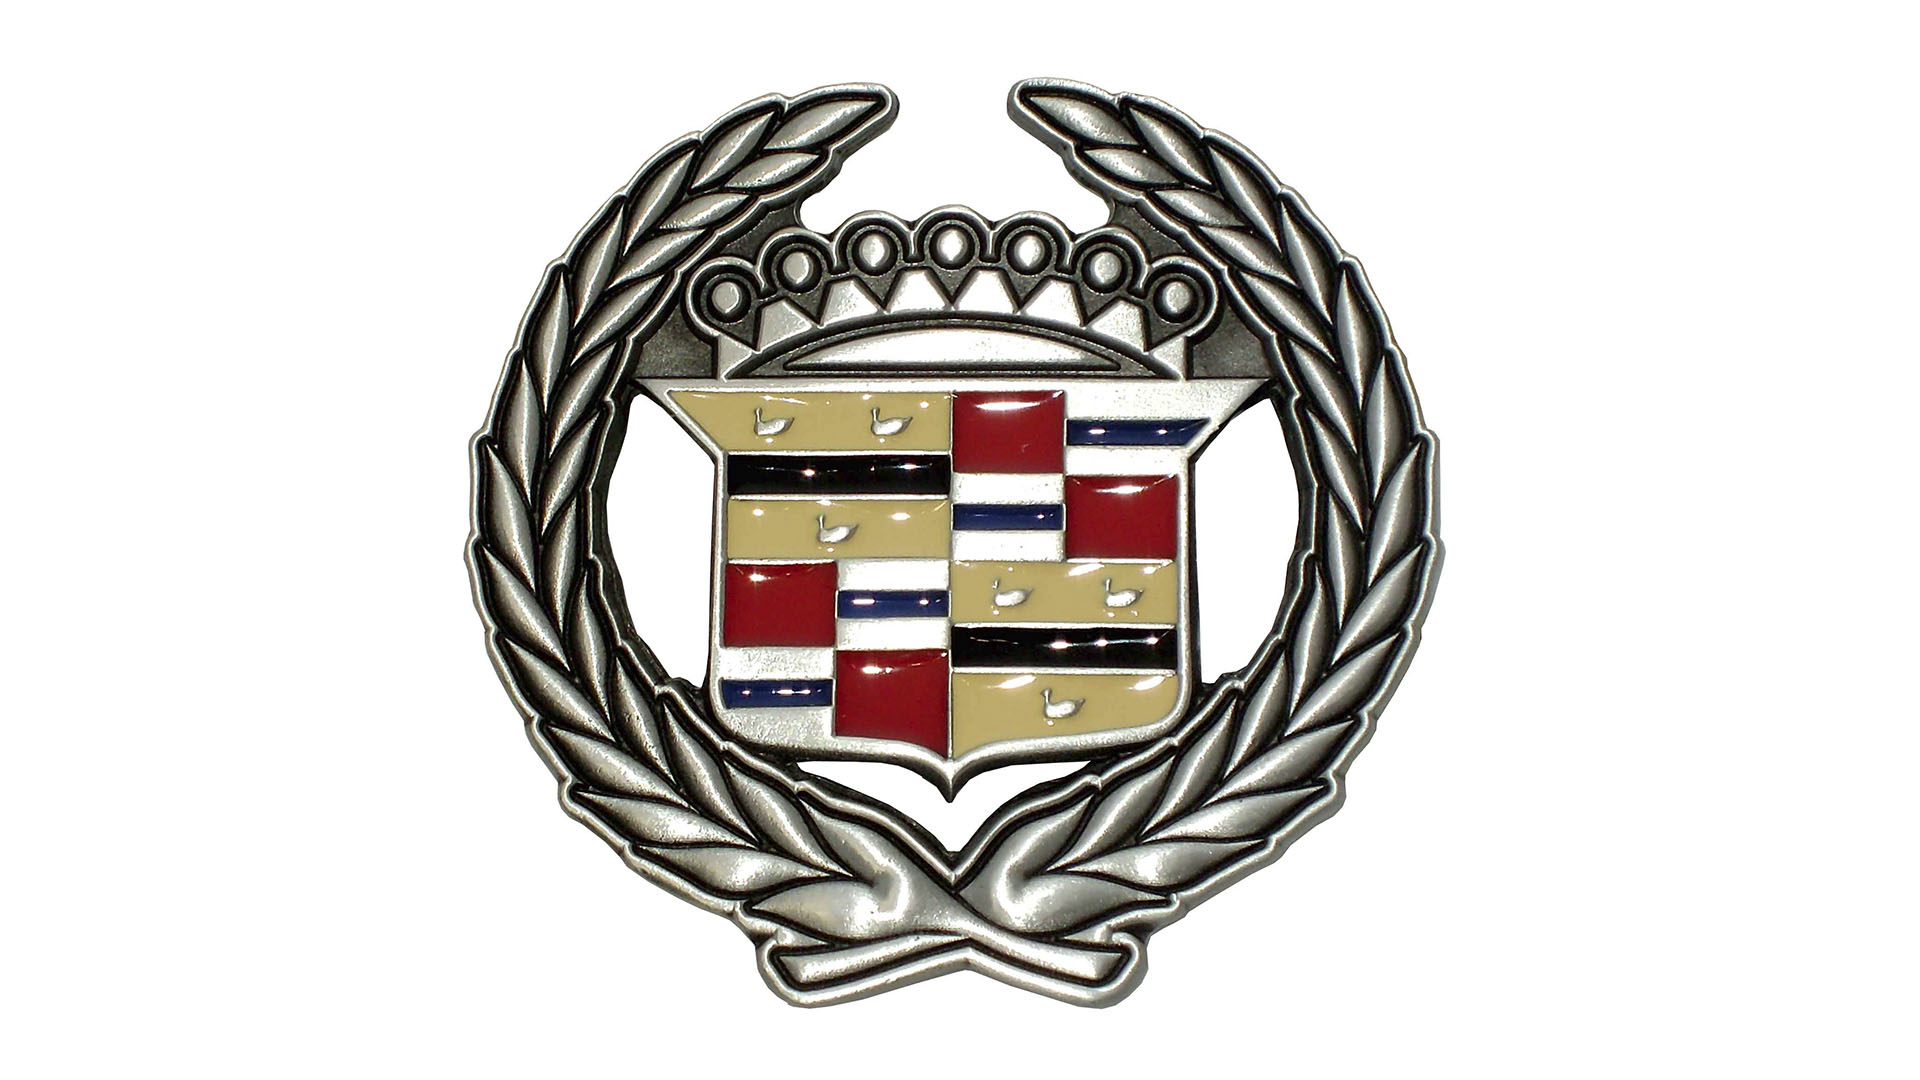 In 2017 The Cadillac Company Officially Introduced New Logo It Lost Laurel Wreaths Adorning Coat Of Arms